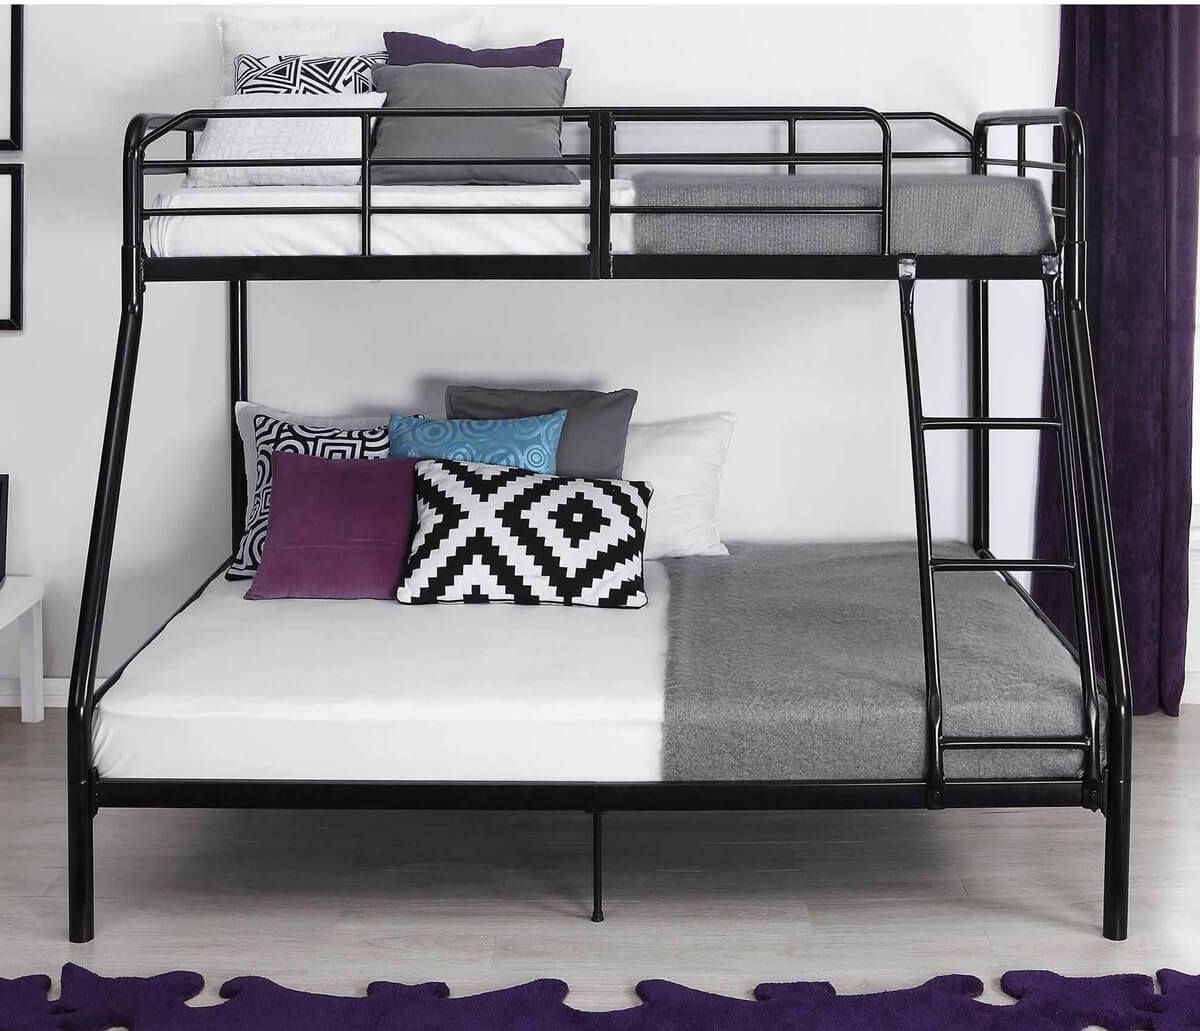 Metal Bunk Beds Twin Over Twin Metal Bunk Beds Are Made With Materials Such As Steel Pipes Metal Bars And Bunk Beds Twin Over Full Bunk Bed Metal Bunk Beds Metal frame bunk beds twin over full